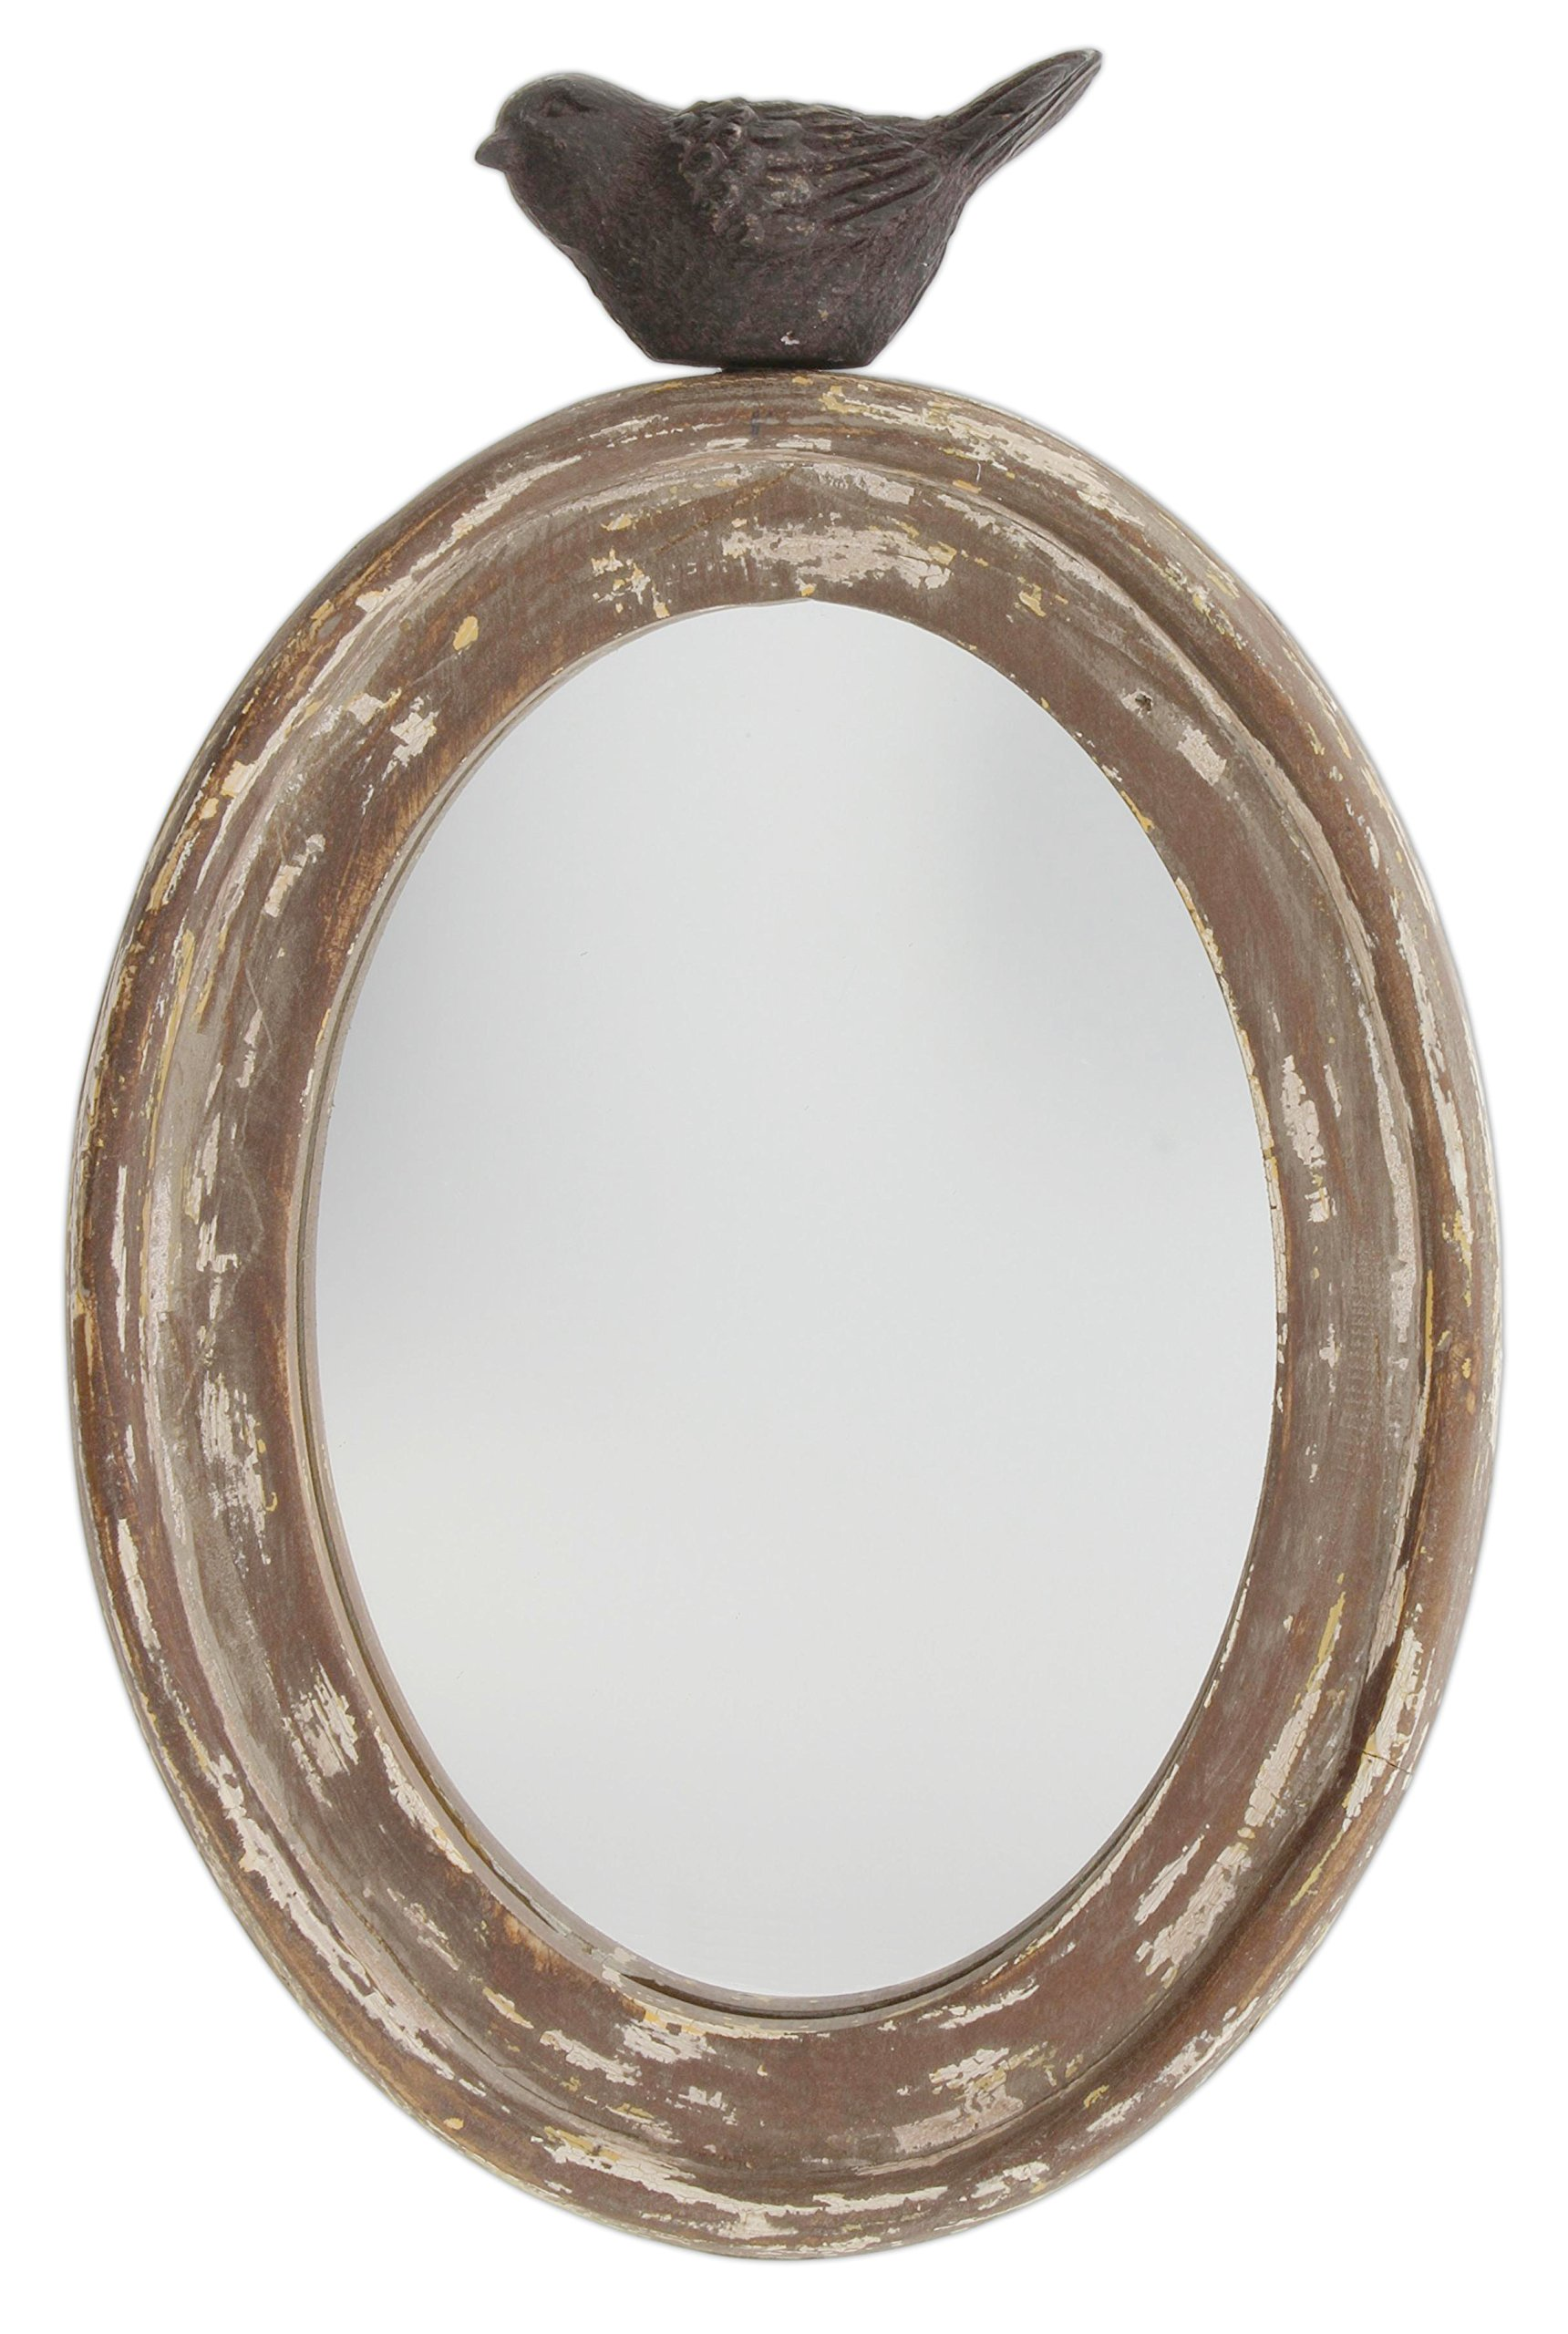 Park Hill 9.5'' Distressed Wood Framed Oval Mirror with Bird Topper